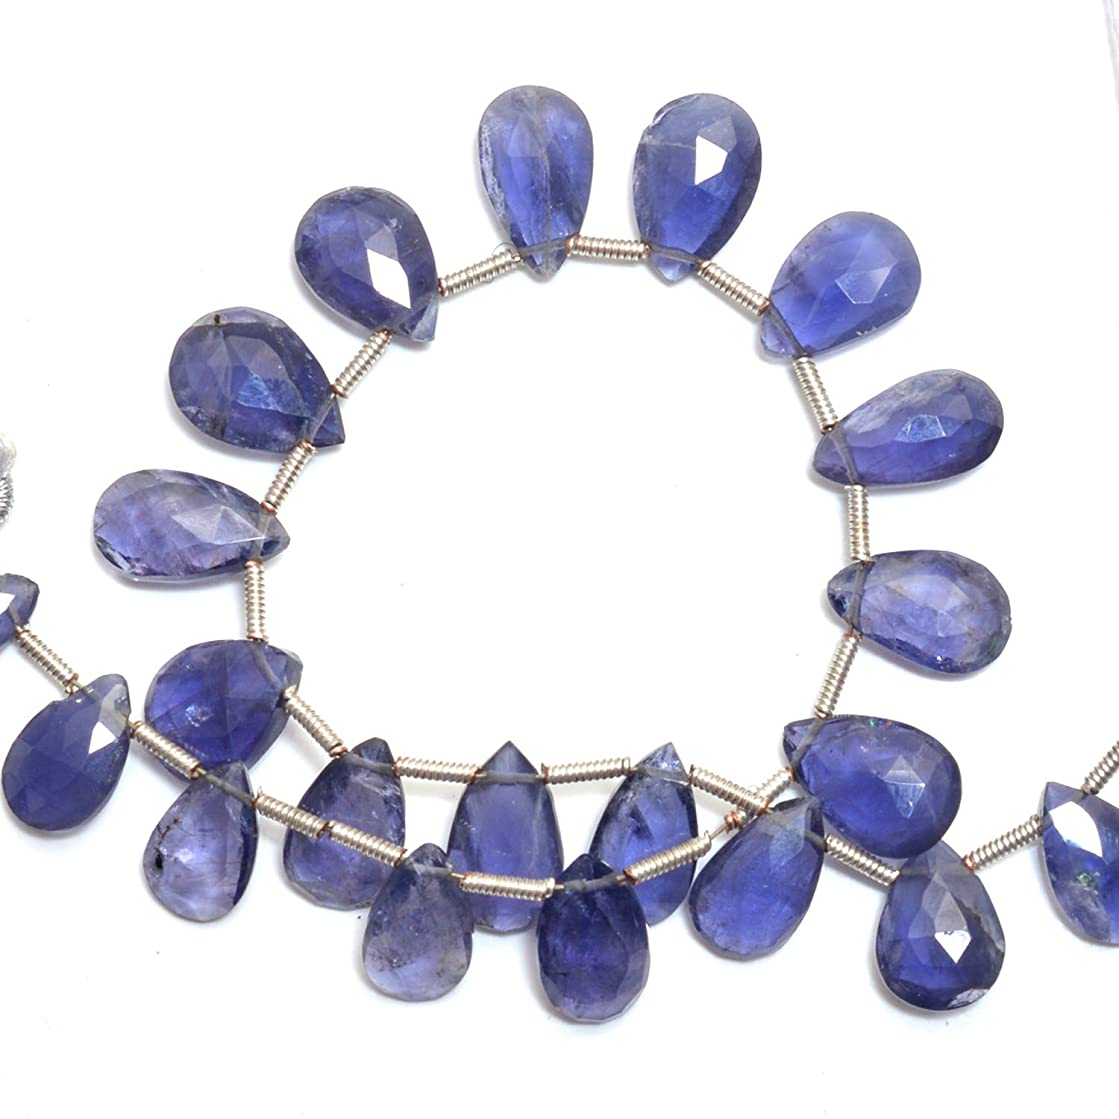 Natural Iolite, Listed by BESTINBEADS, AAA Quality Faceted pear Side Drill semi Precious Gemstone Bead Strand 4 inches Long.